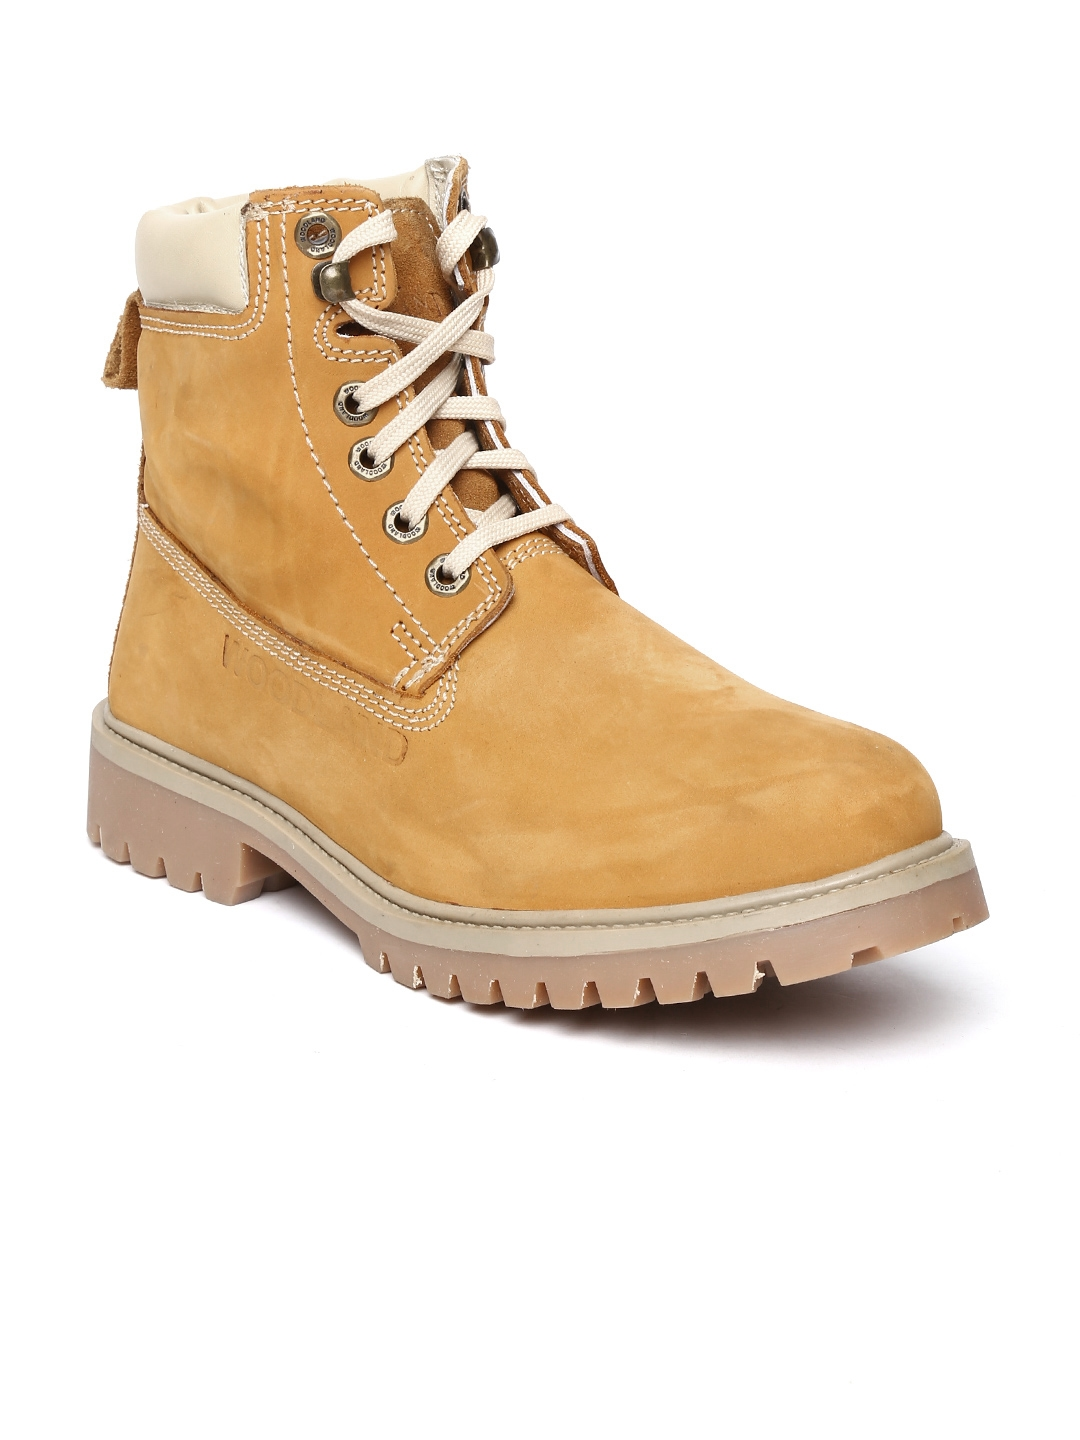 a97be43f3b6 Buy Woodland Men Mustard Yellow Suede Boots - Casual Shoes for Men ...